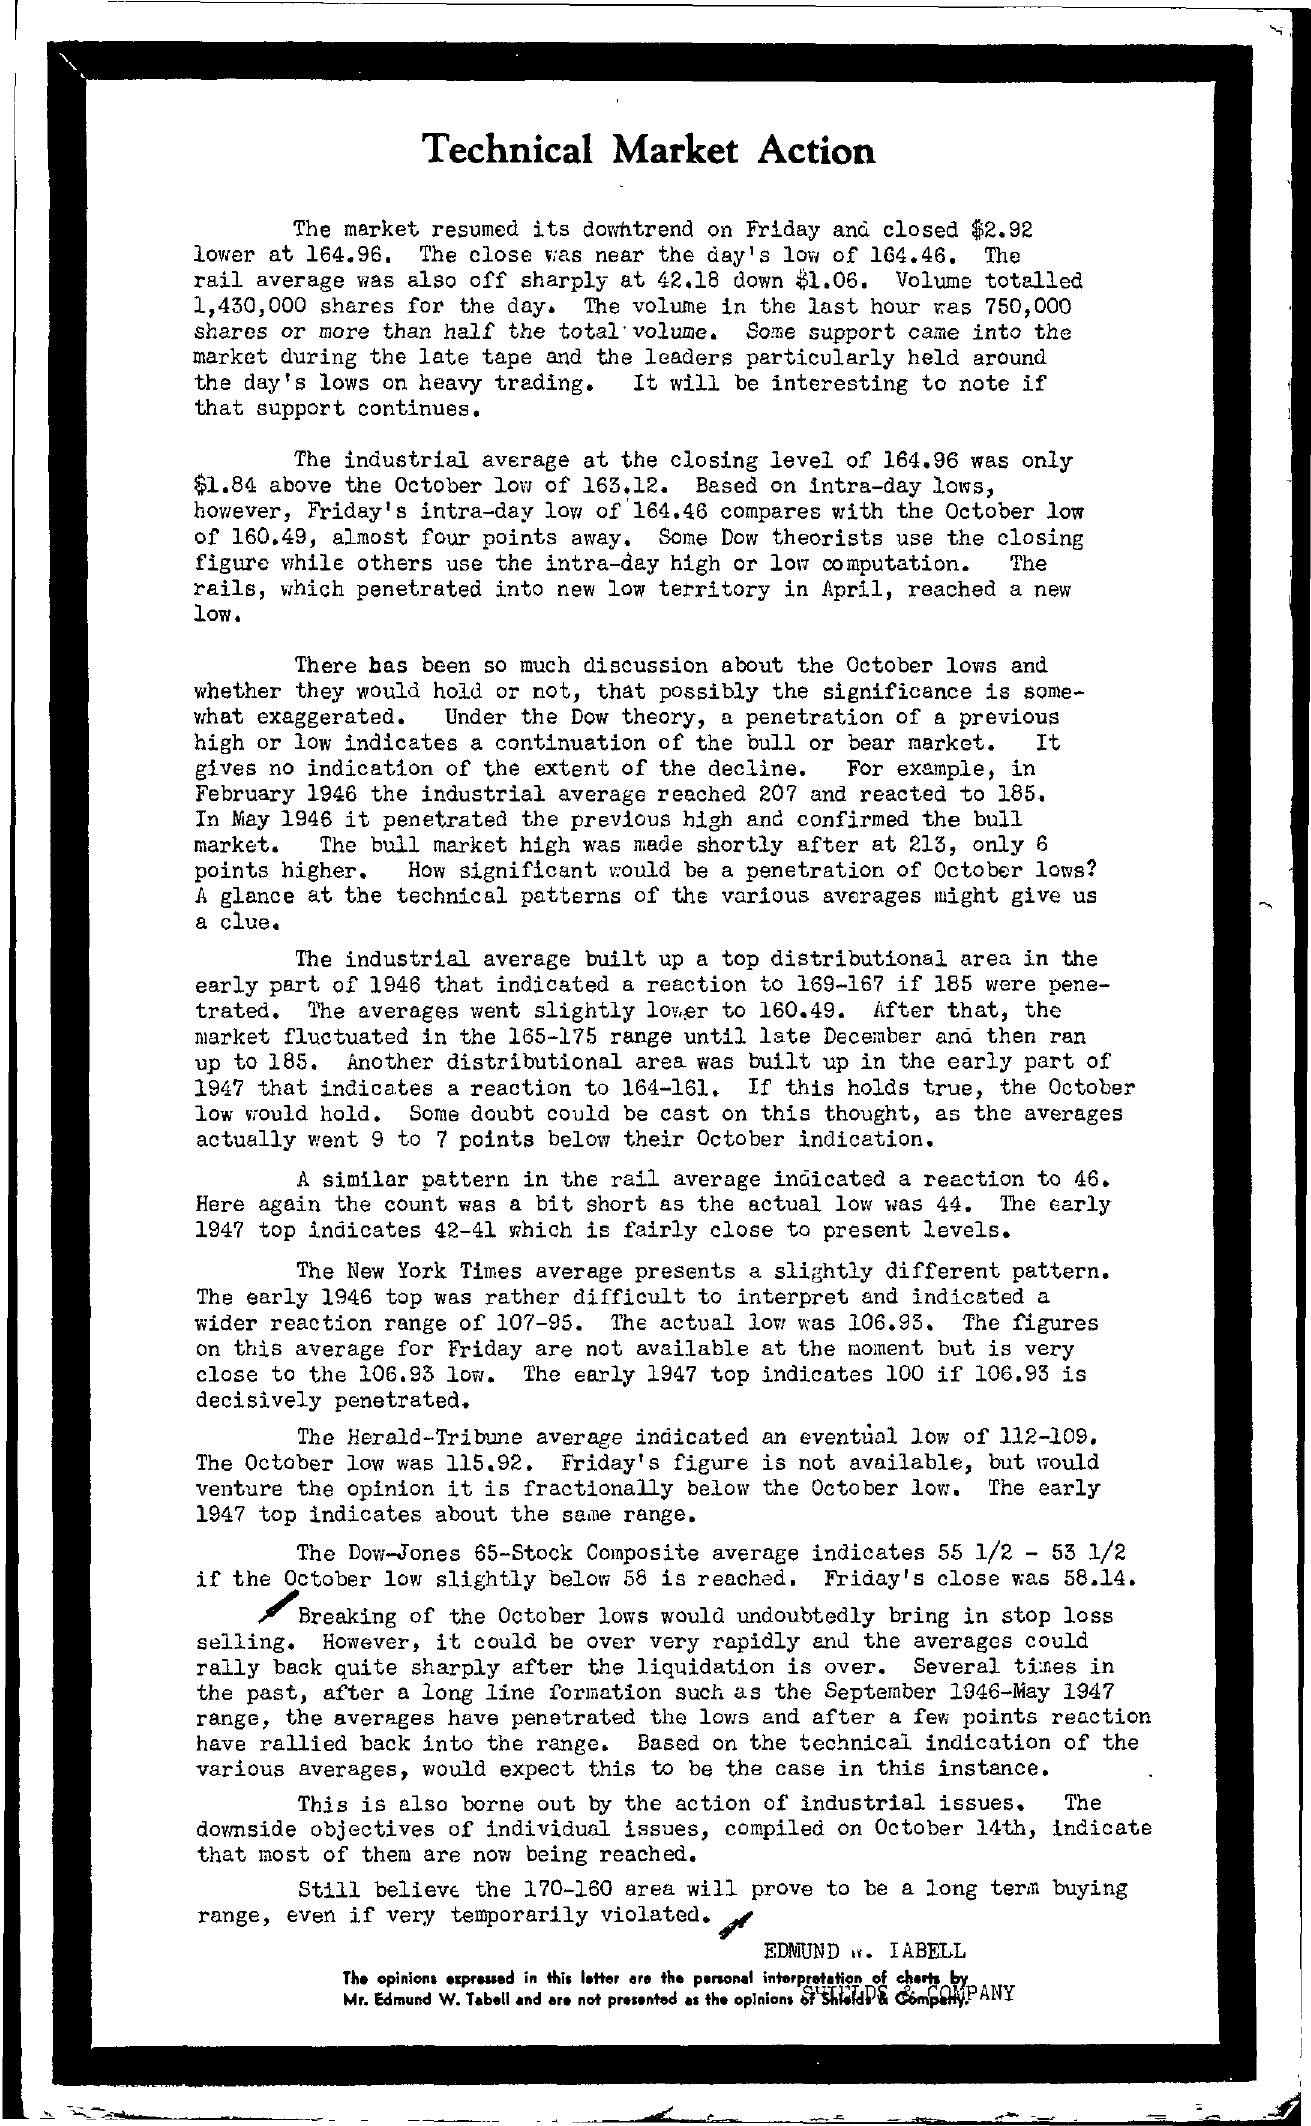 Tabell's Market Letter - May 10, 1947